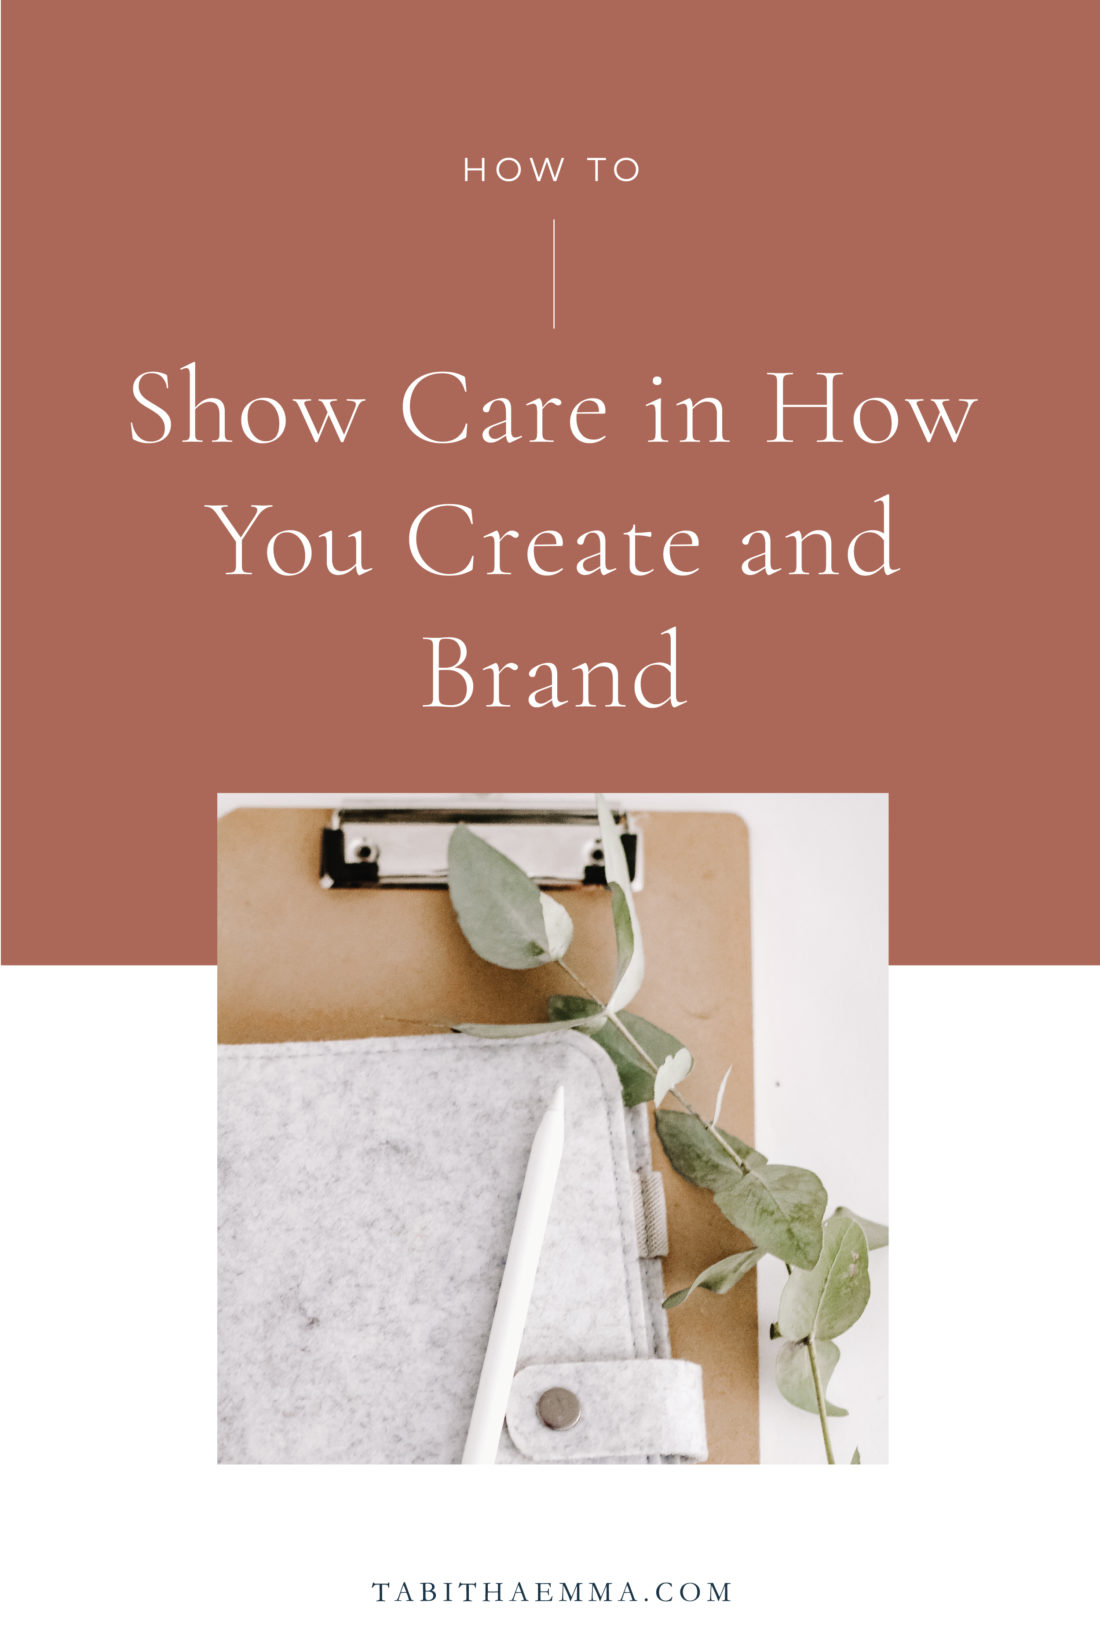 how to show care in how you create and brand